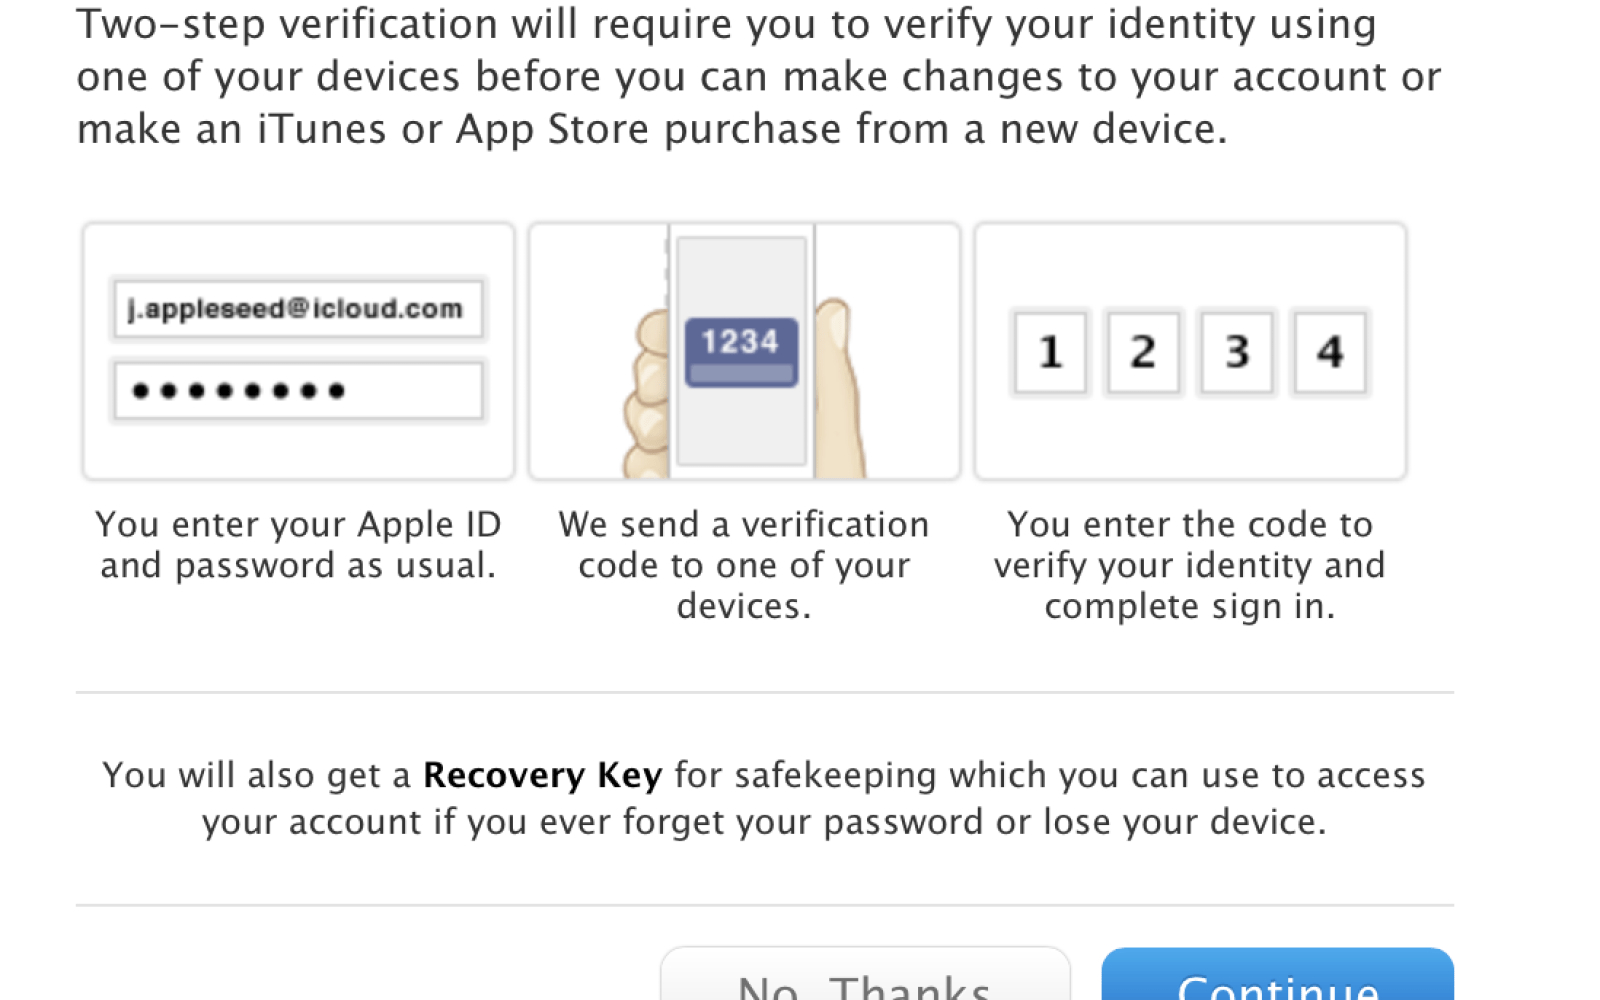 Apple beefs up iCloud, Apple ID security with two-step verification